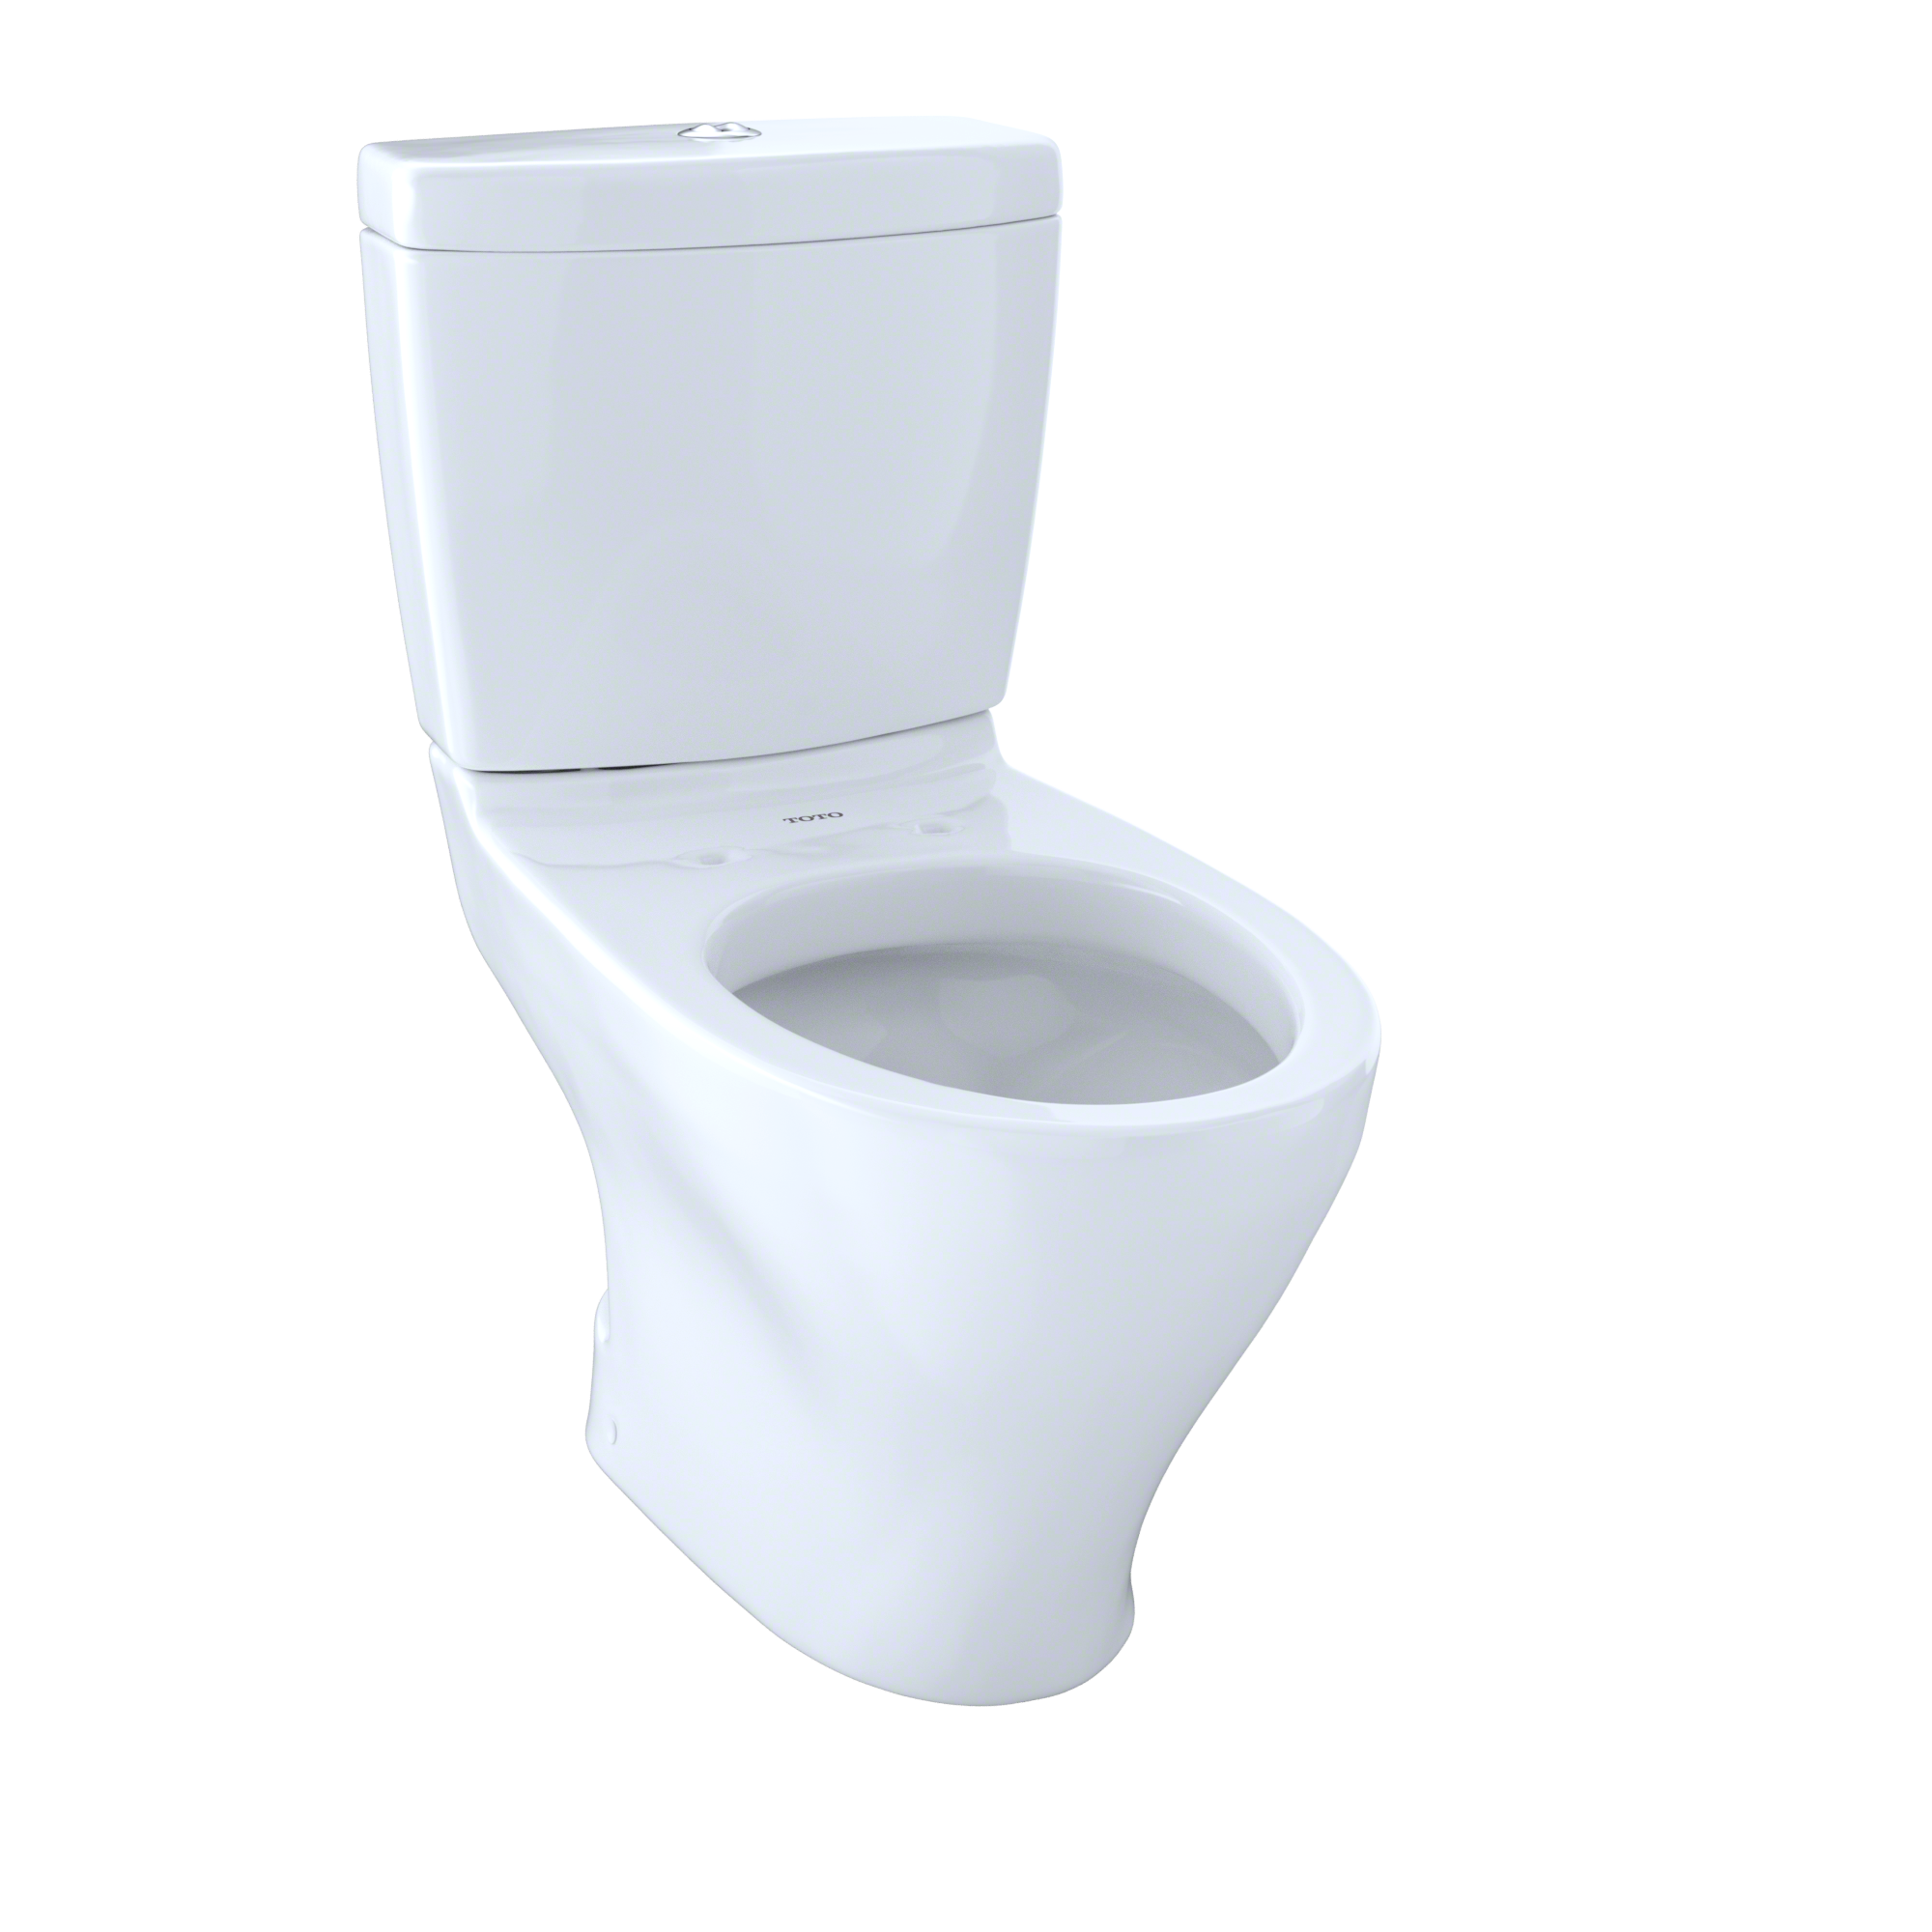 TOTO® Aquia® Two-Piece Elongated Dual-Max®, Dual Flush 1.6 and 0.9 GPF Universal Height Skirted Toilet for 10 Inch Rough-In, Cotton White - CST412MF.10#01